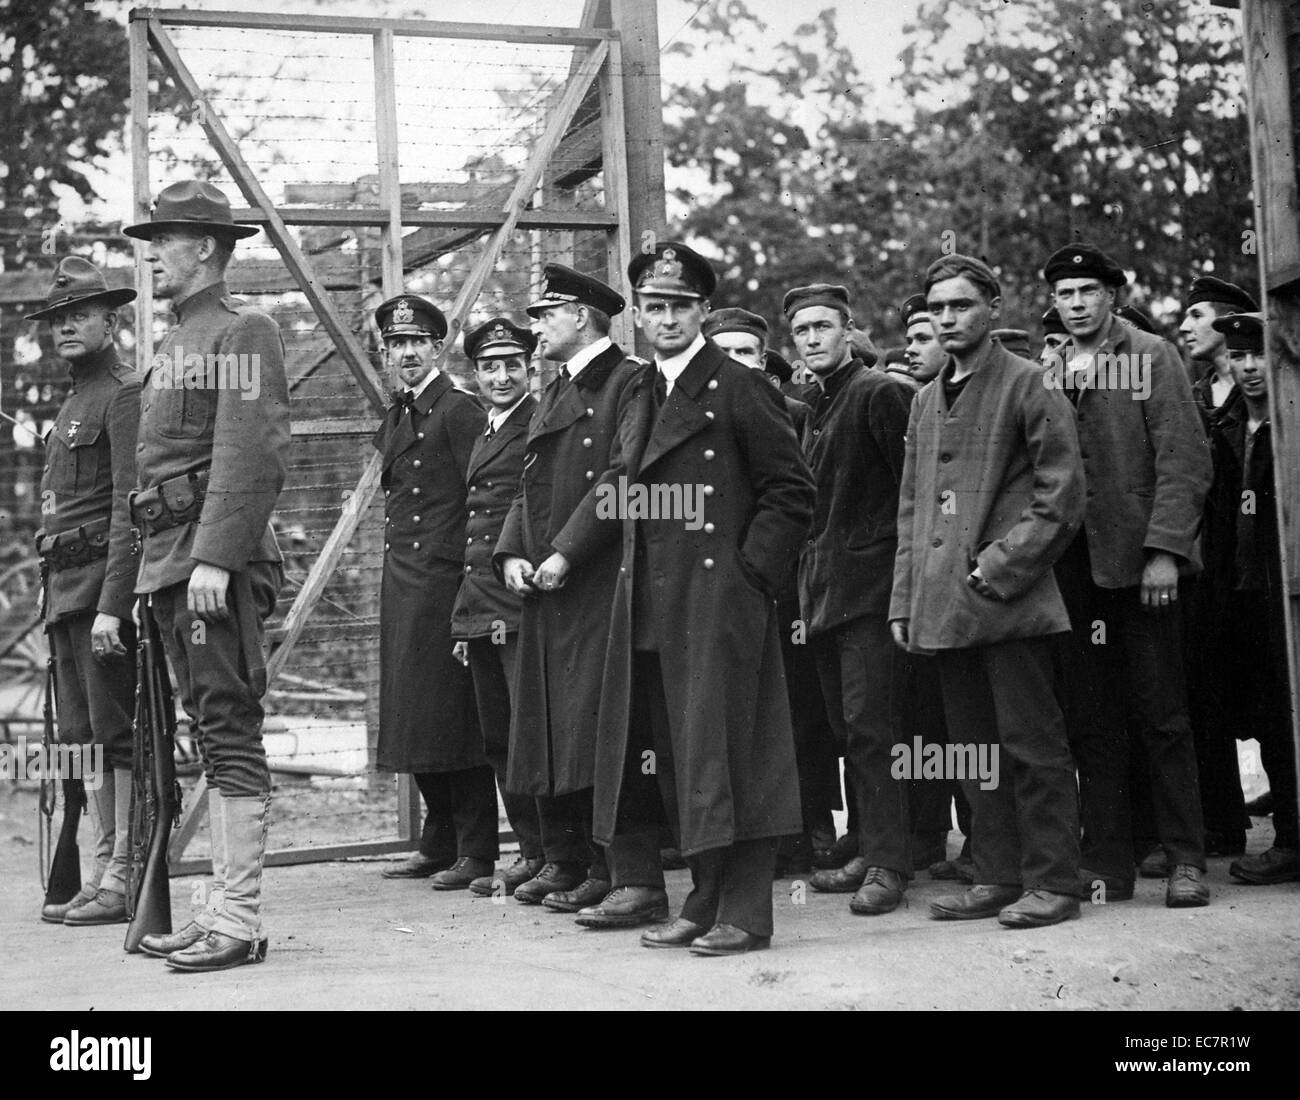 Photograph of Captured German Officers and Crew - Stock Image